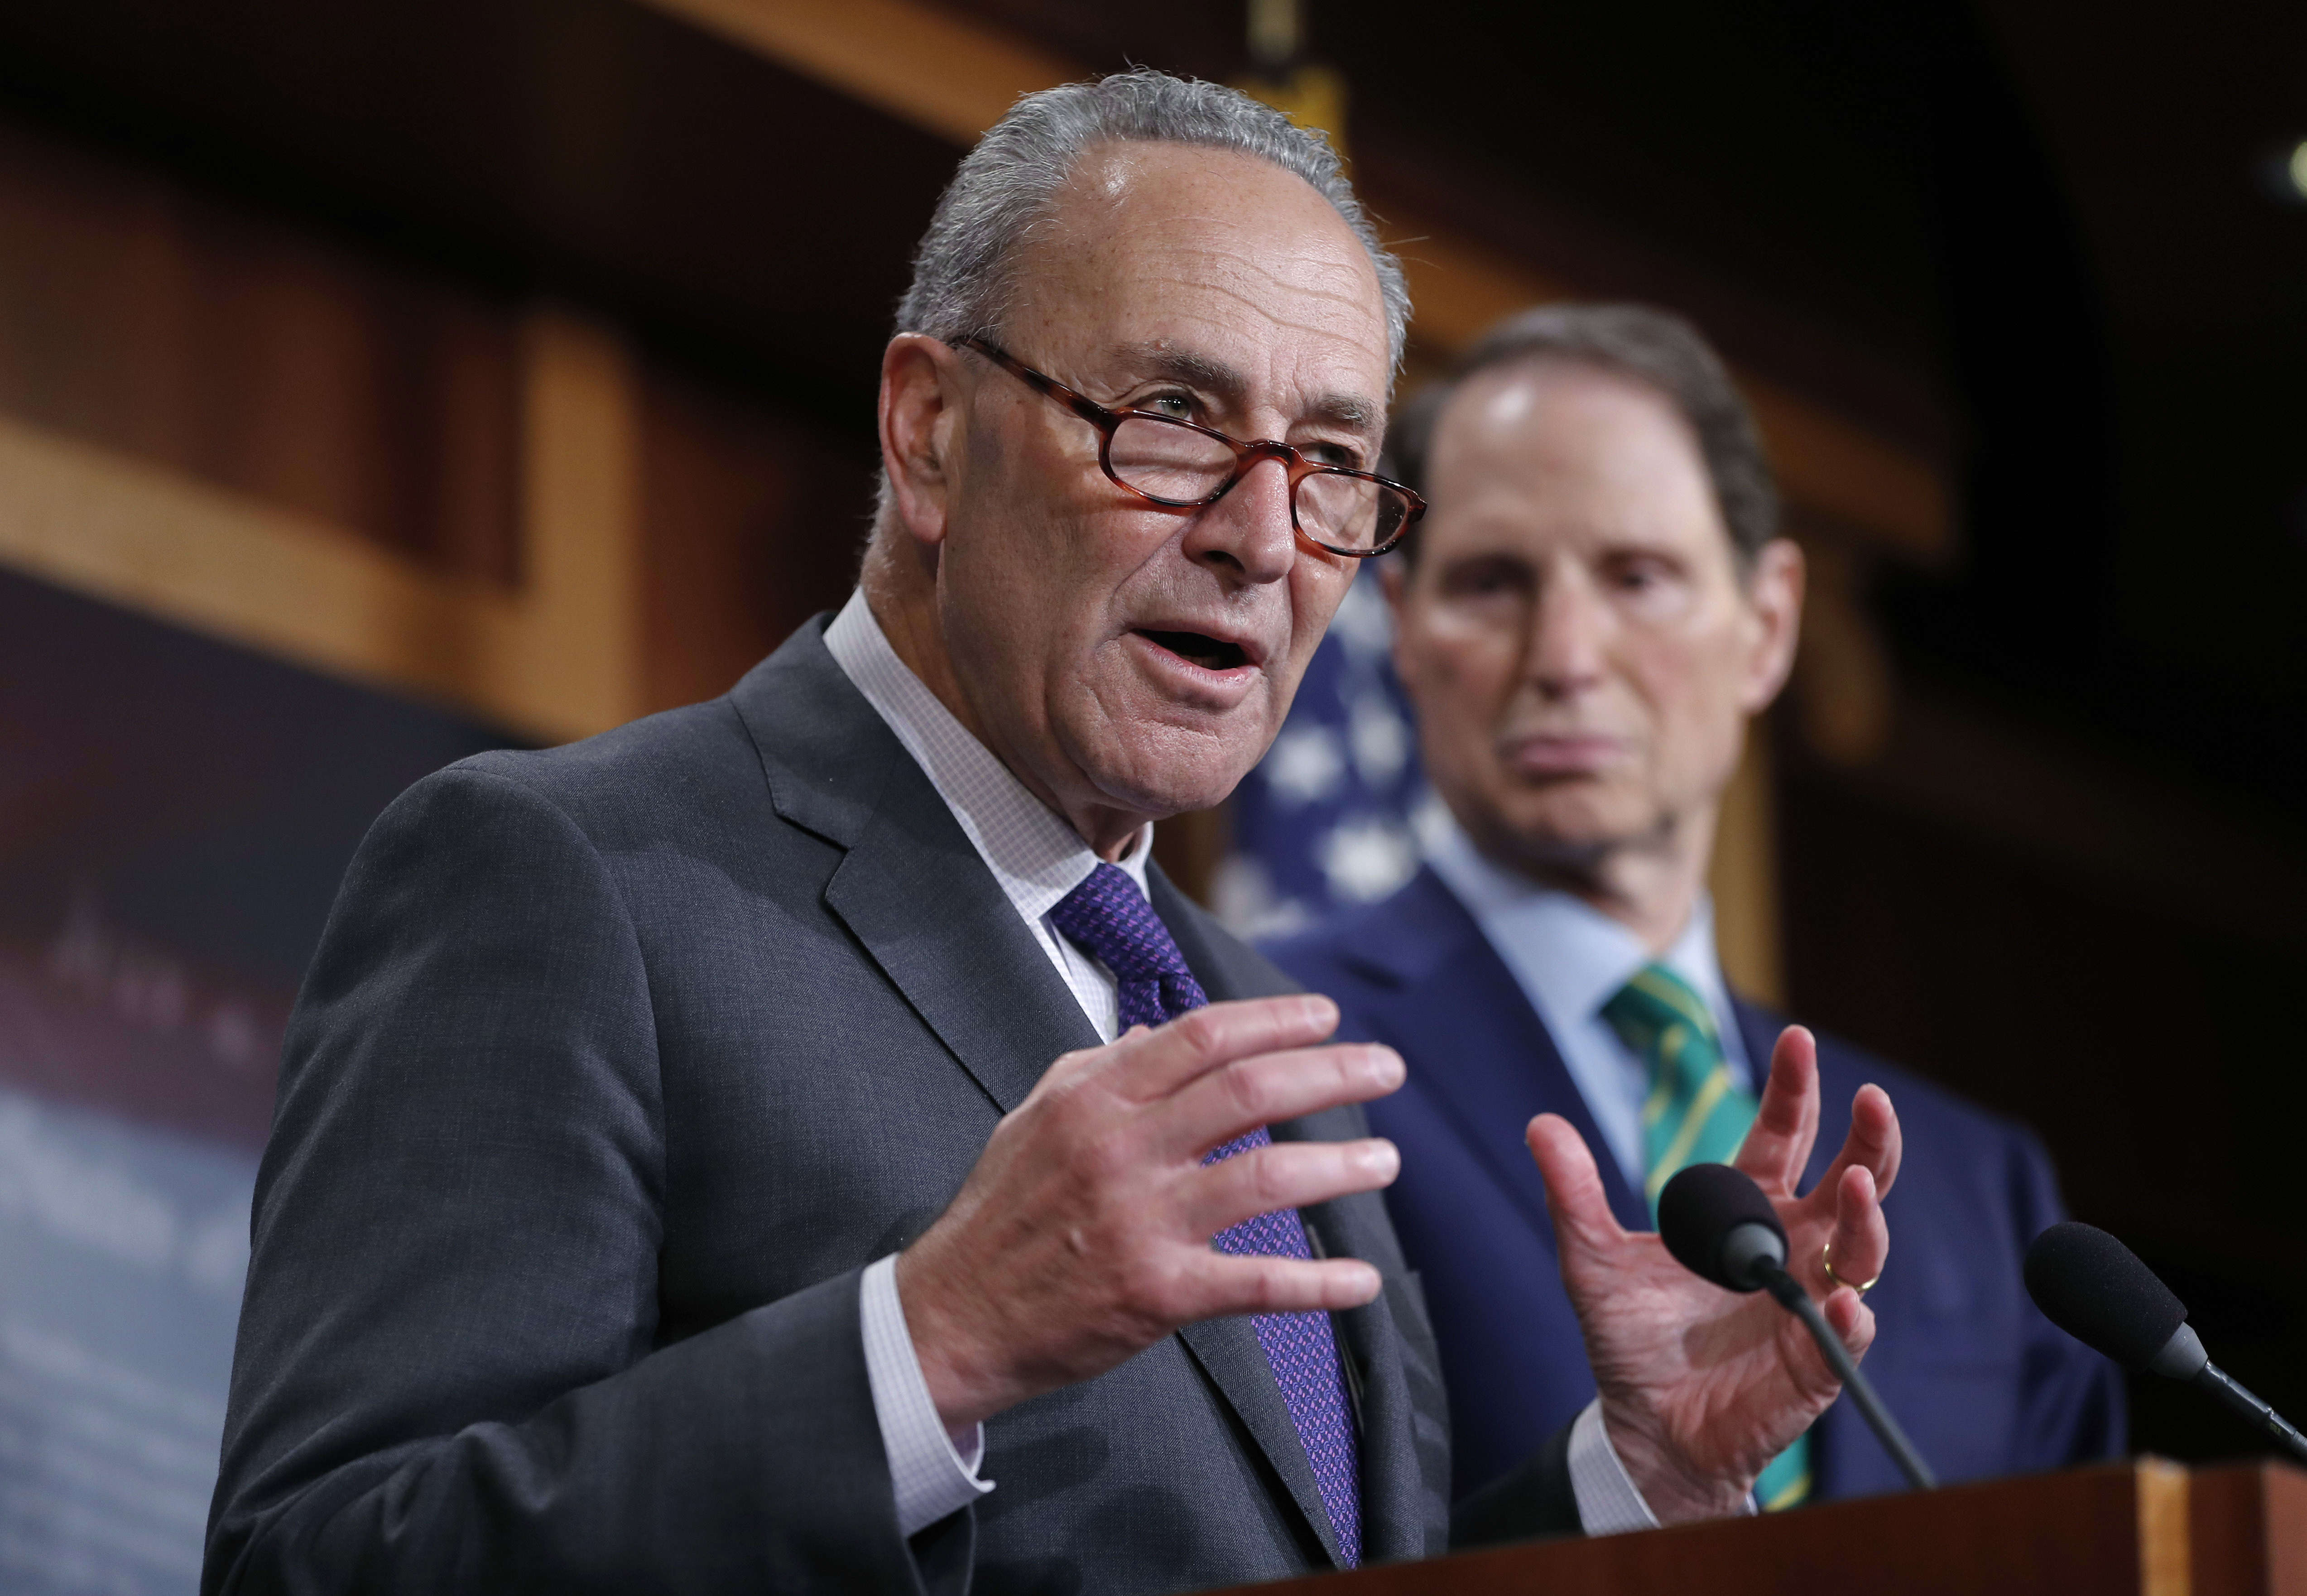 Senate Minority Leader Chuck Schumer of New York and Sen. Ron Wyden, D-Ore., discuss the Republican tax plan during a news conference on Capitol Hill in Washington, Sept. 27, 2017.